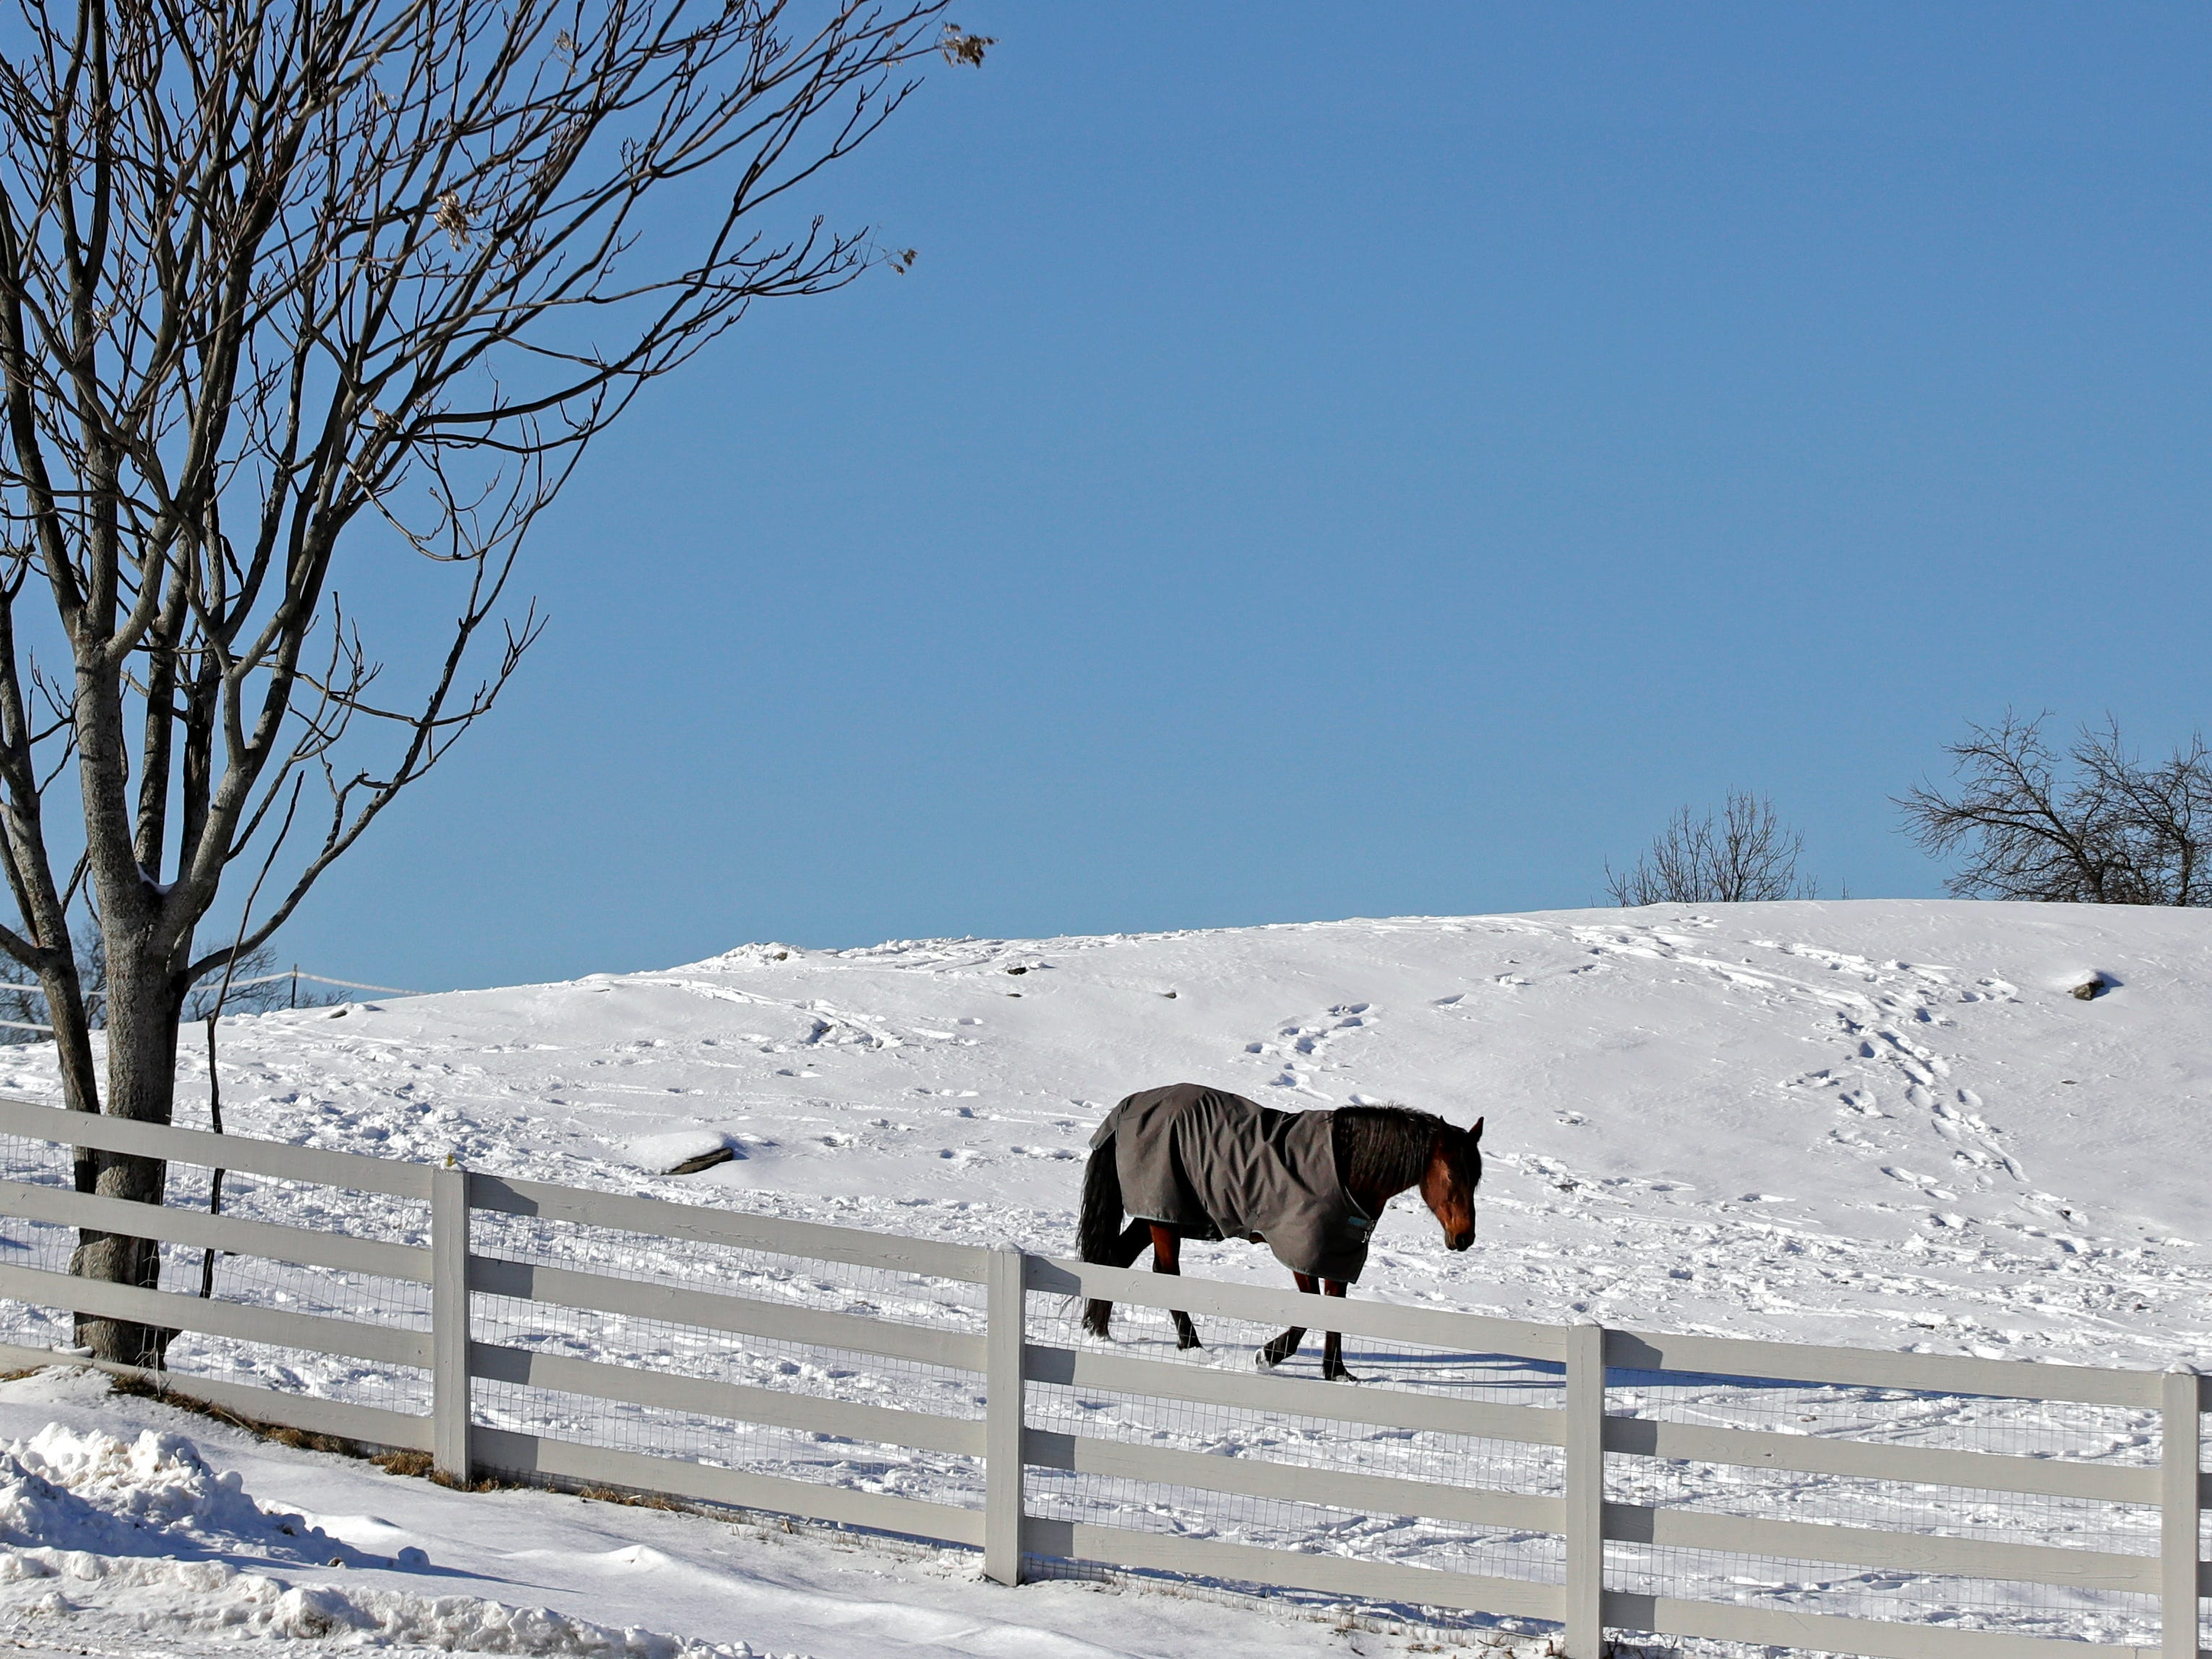 A horse wears a coat as he walks in the snow at Nevins Farm, Jan. 30, 2019, in Methuen, Mass.